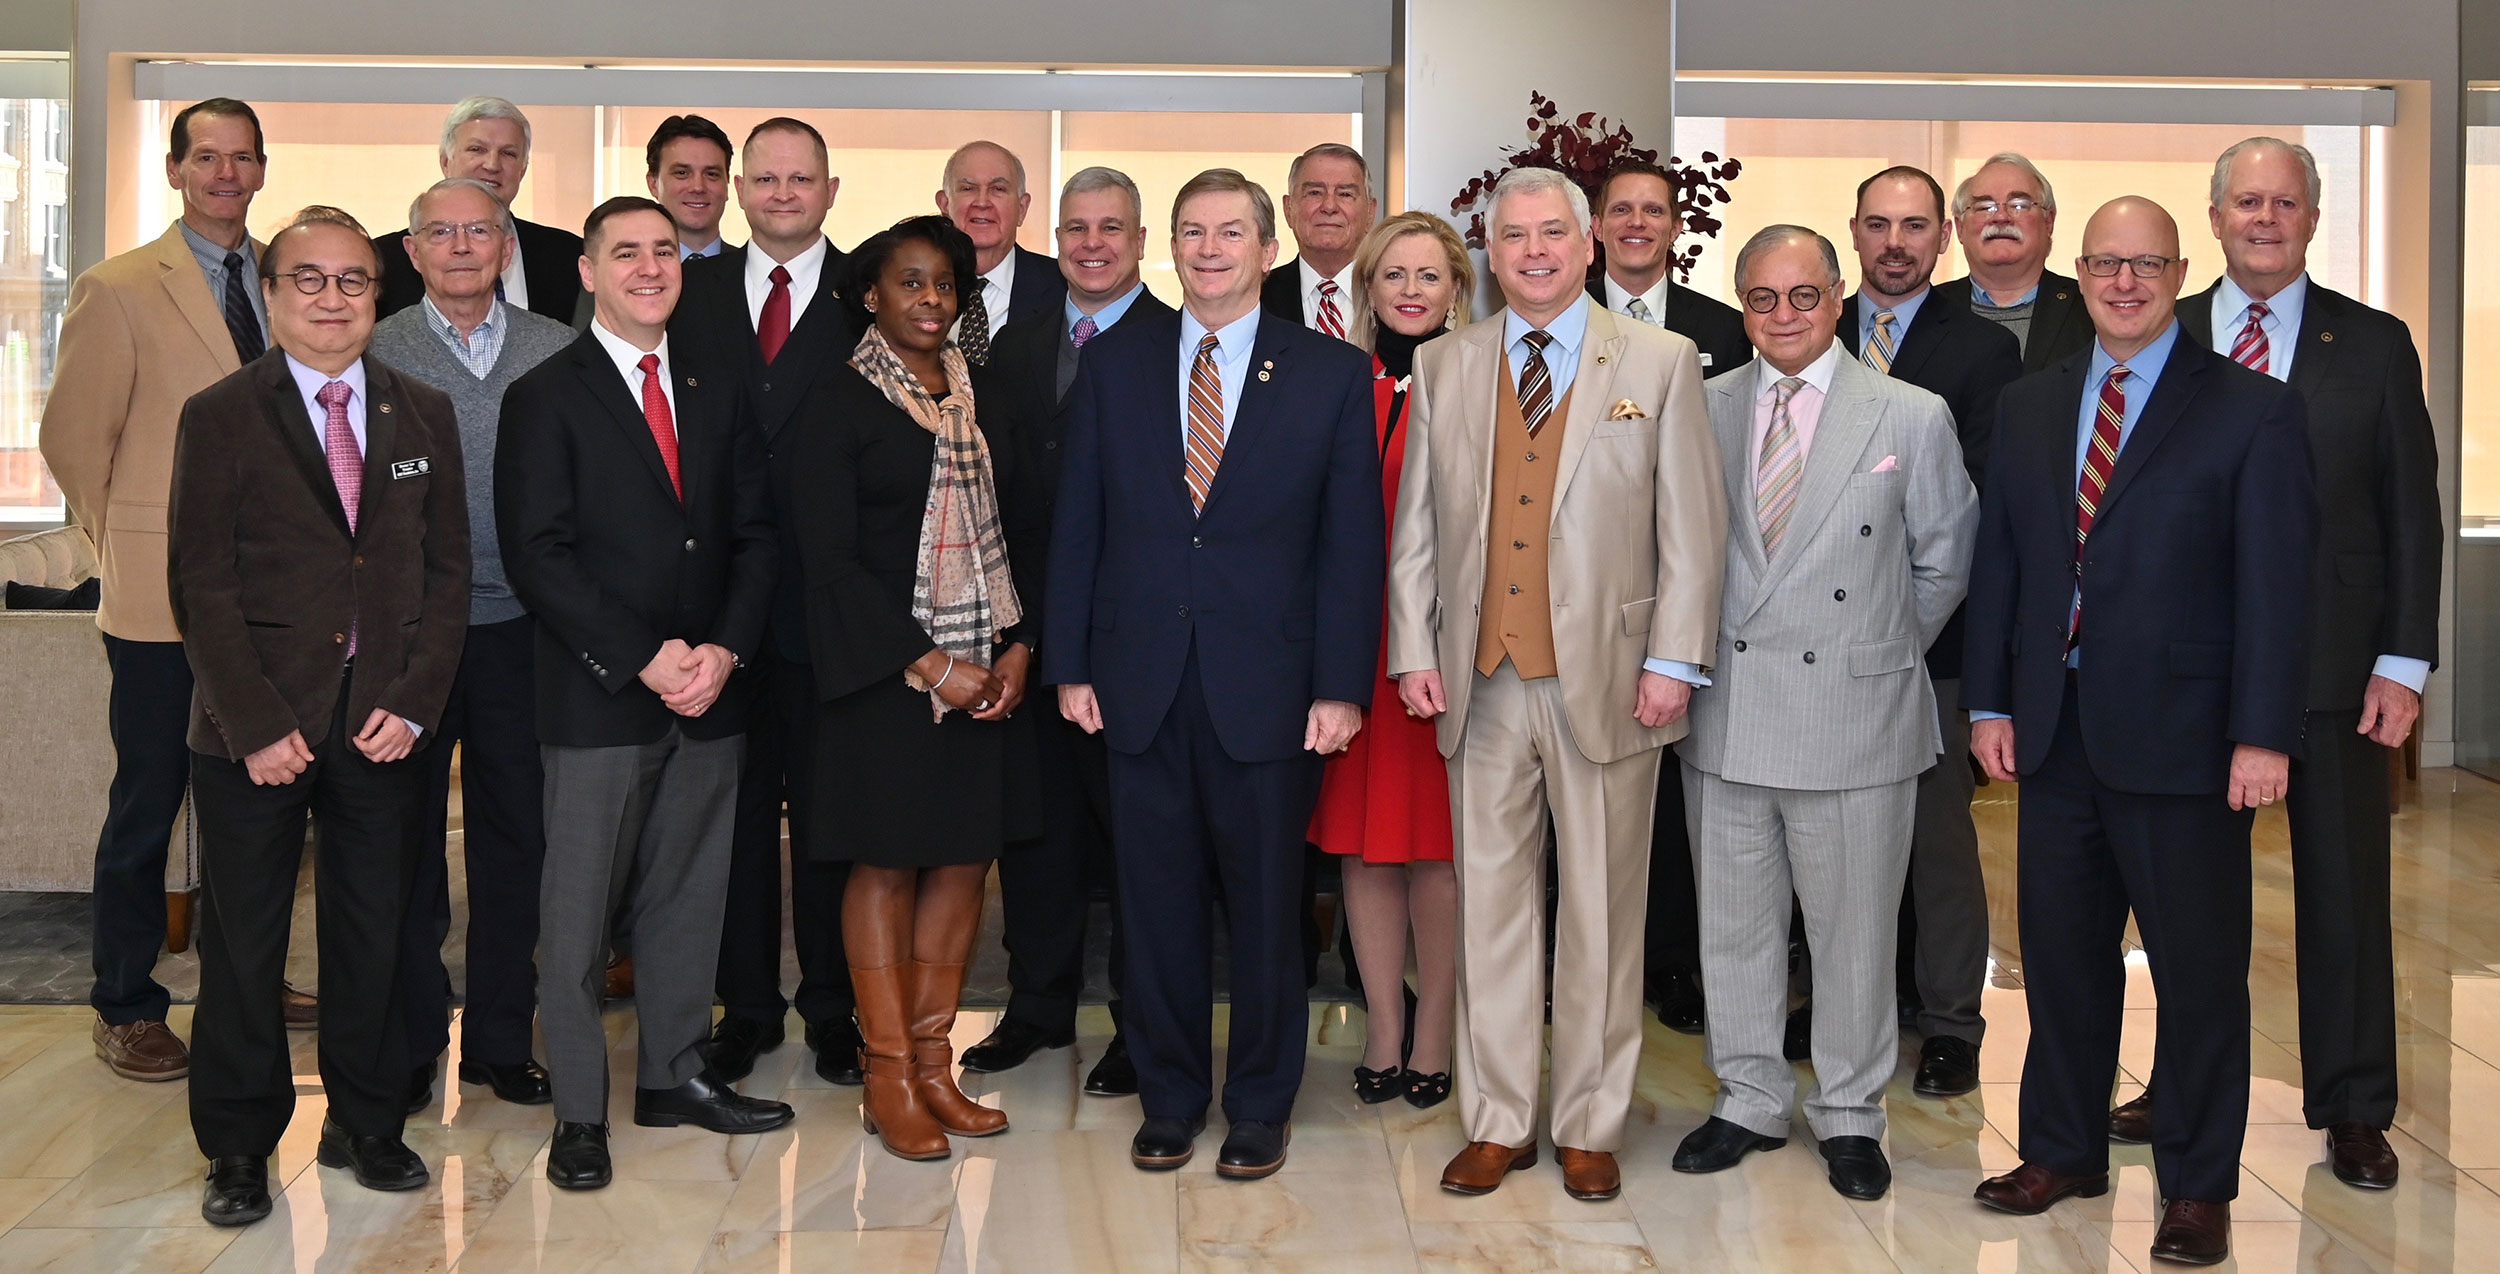 Benny Lee (left, front row) with his fellow CGSC Foundation trustees at the Feb. 21, 2020 Foundation board of trustees meeting in Kansas City.